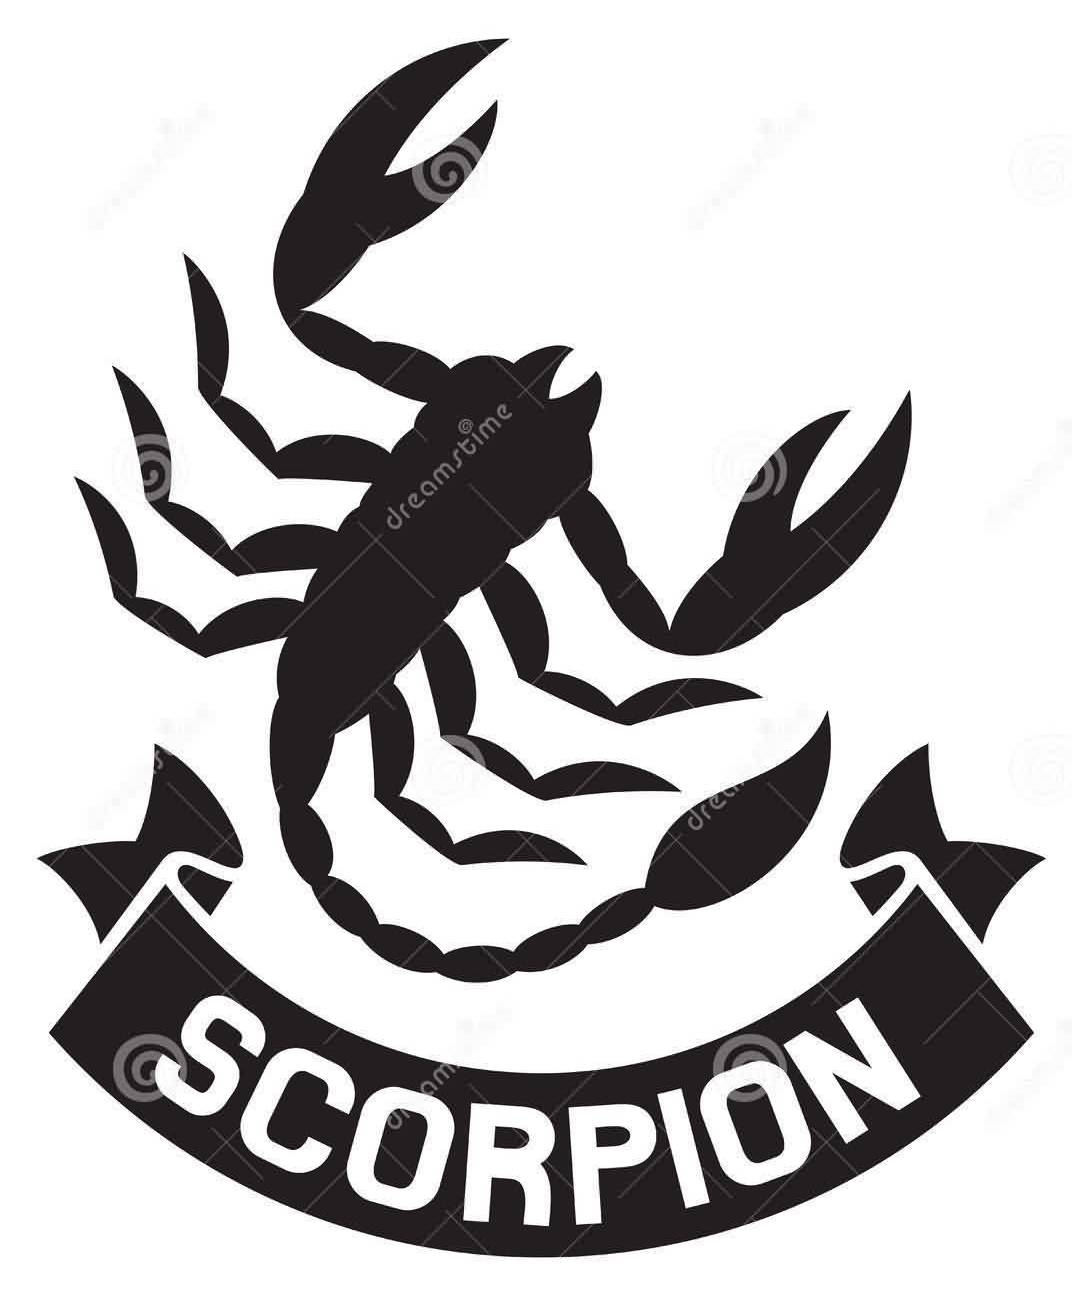 Scorpion Label Symbol Tattoo Design